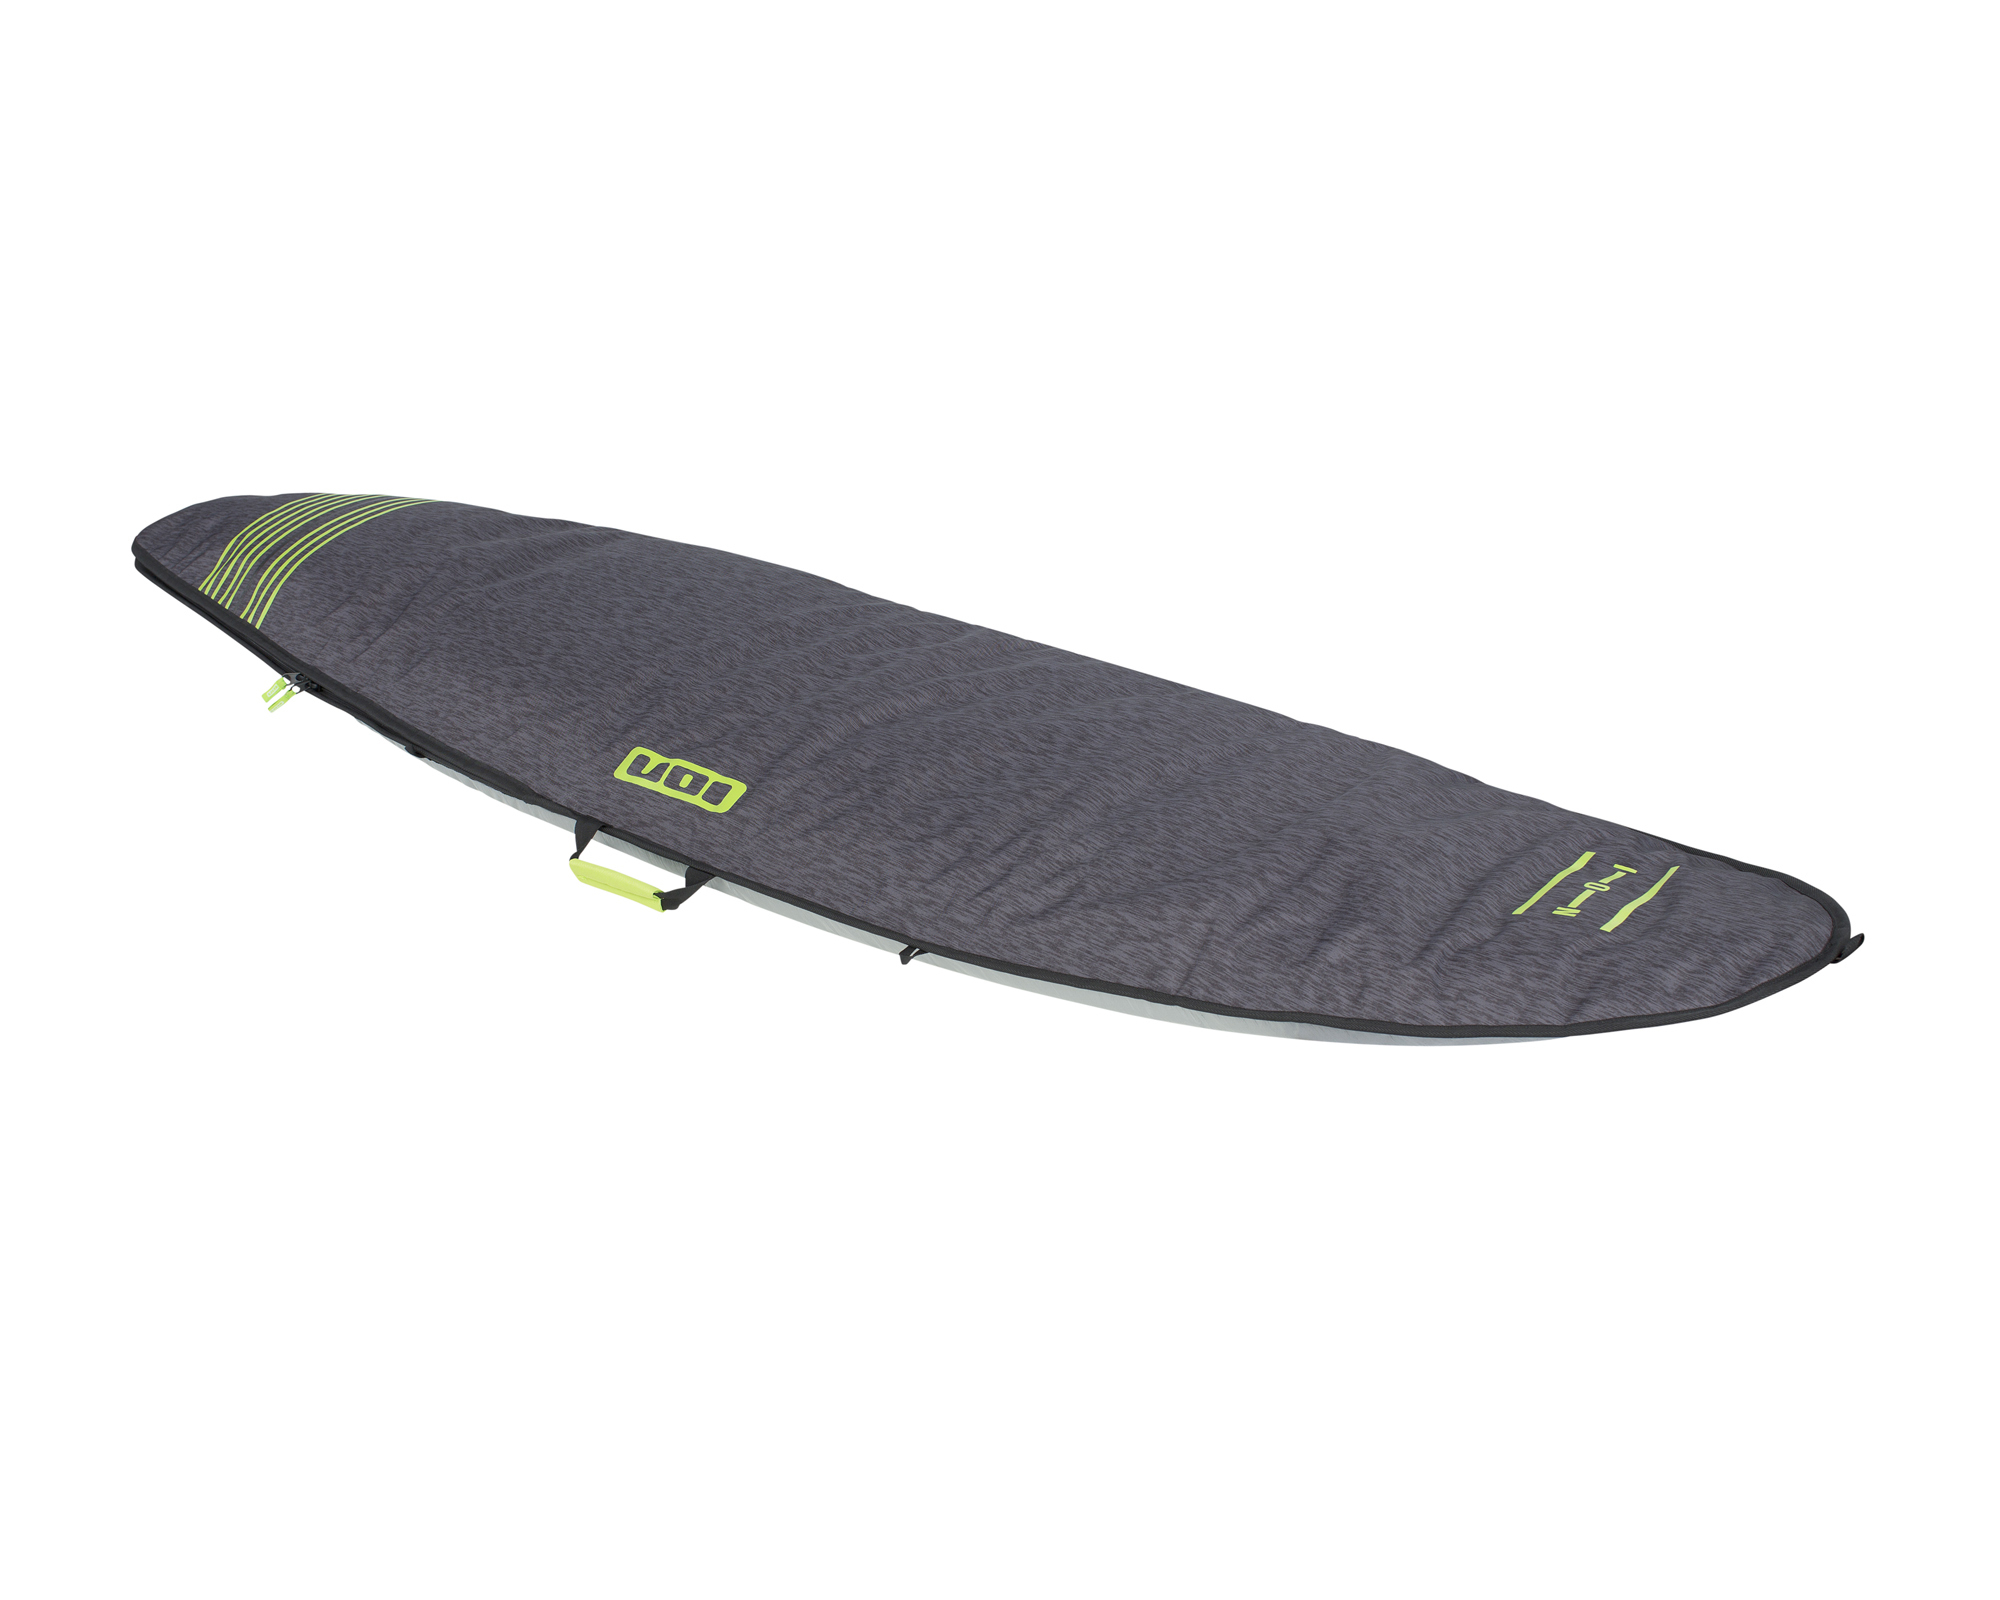 surf-sup bag/sacche